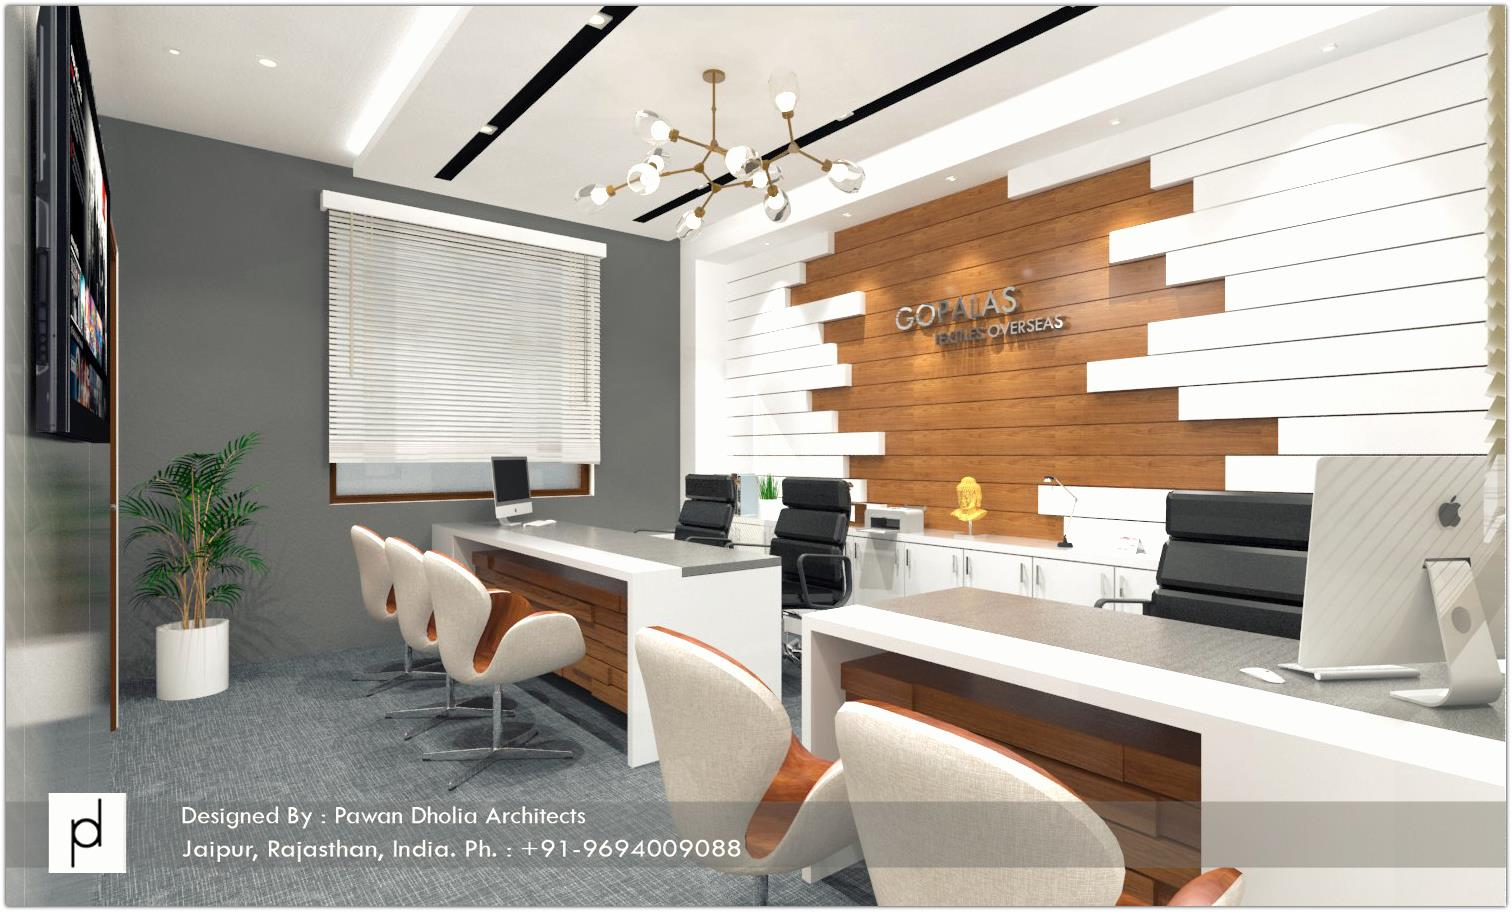 Proposed Office for Gopalas Textiles at Sitapura, Jaipur - MD's Cabin01